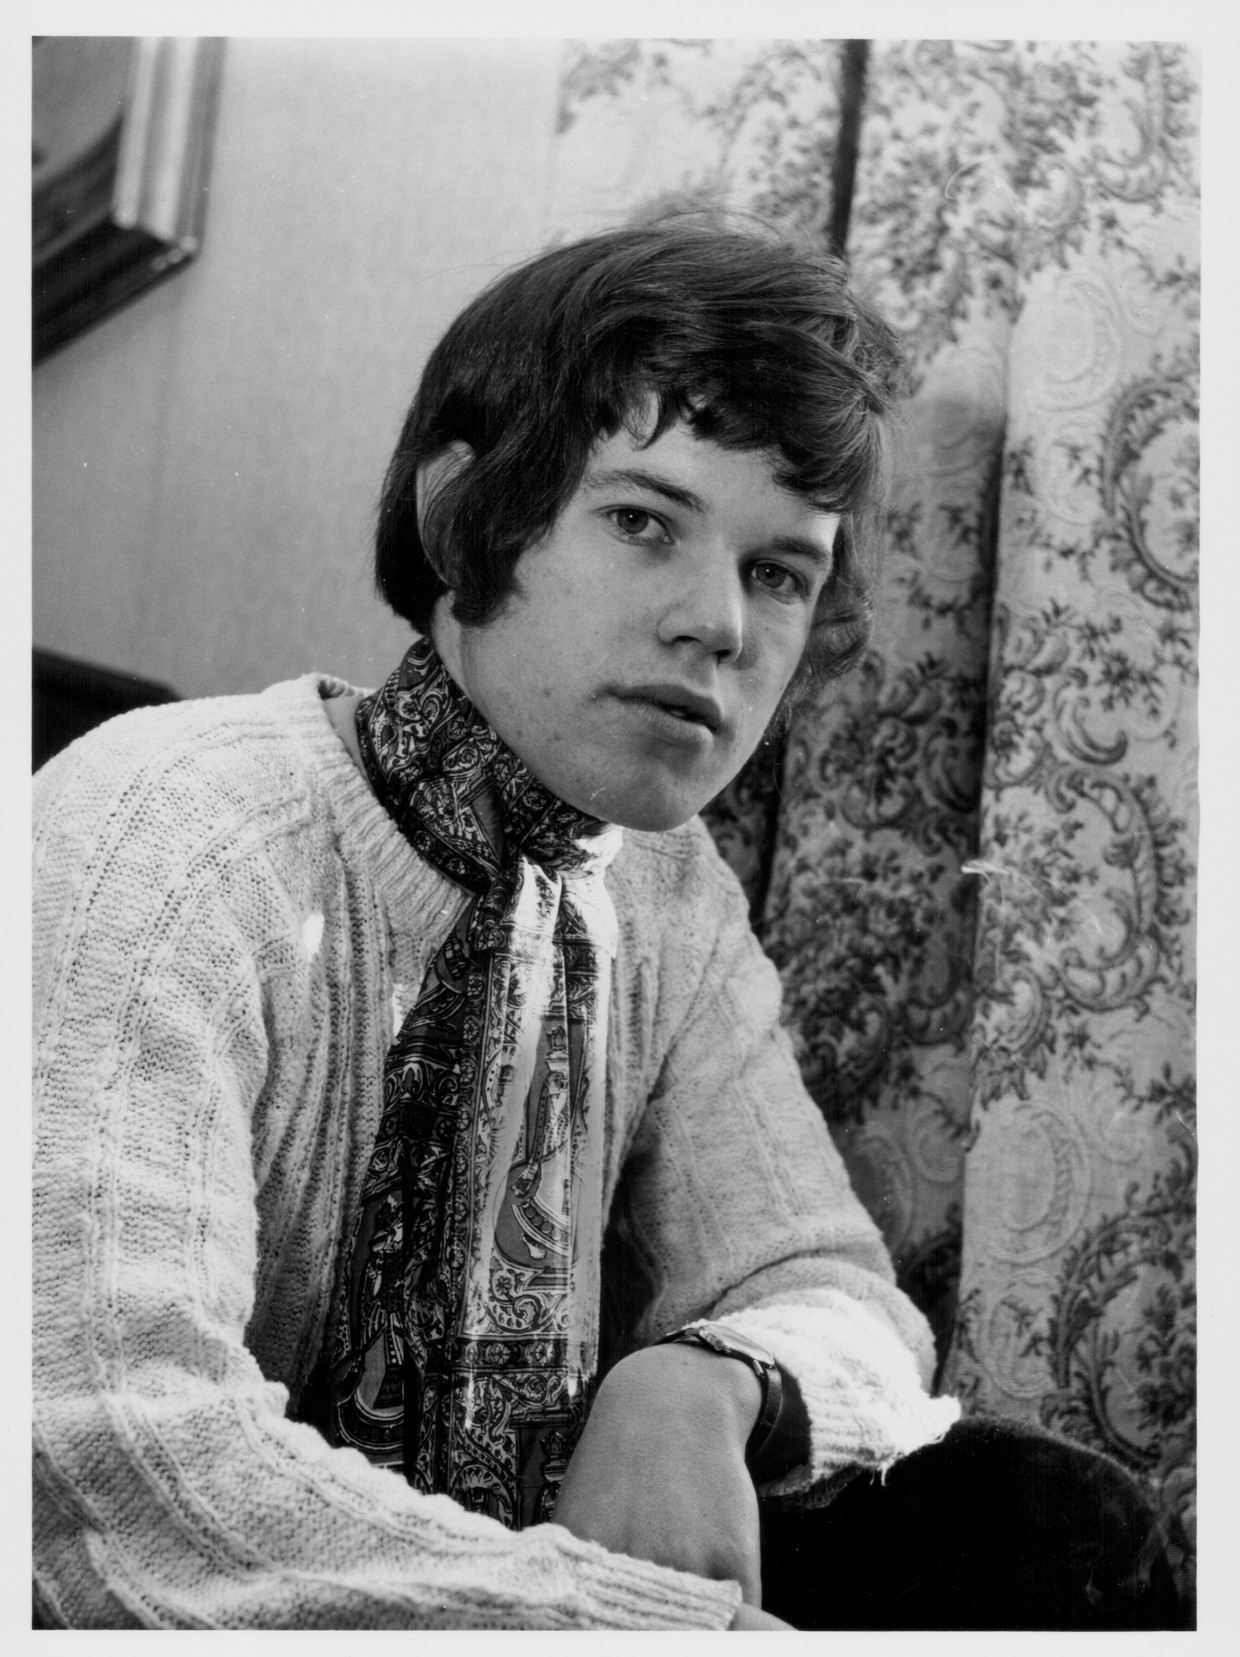 Chris Jagger in 1967 Beeld Getty Images